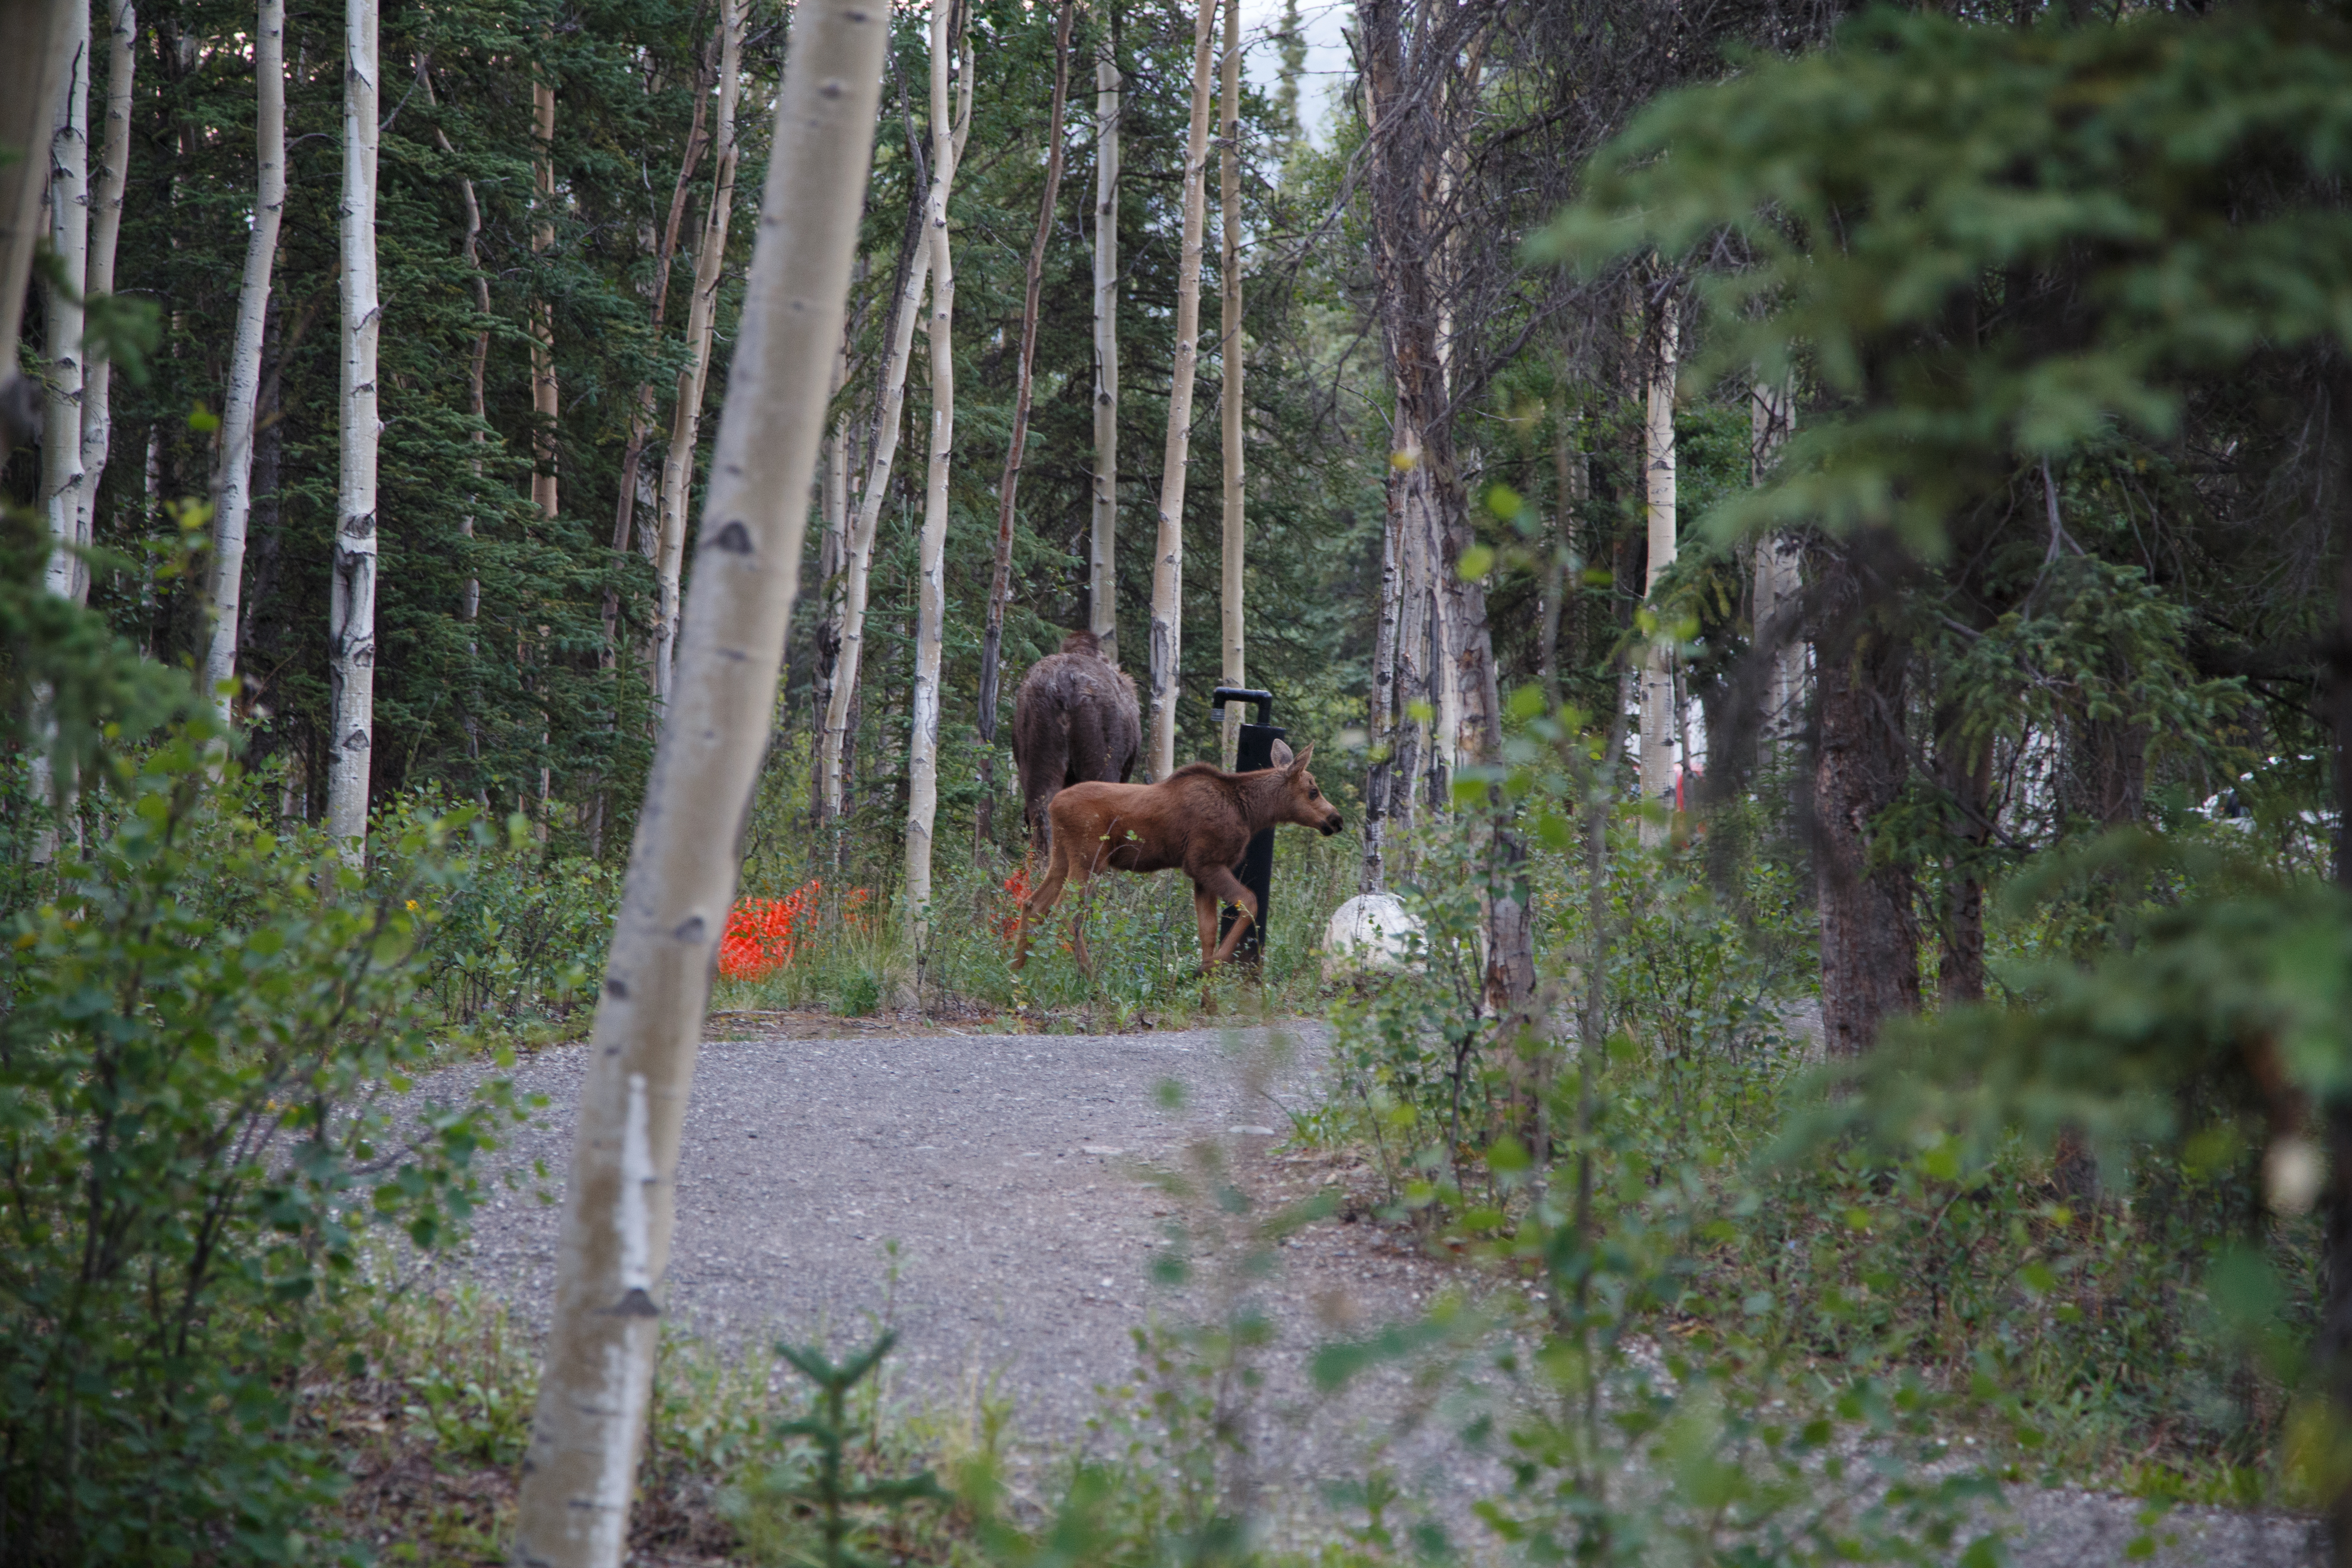 Day 4 - Moose in Campground, Savage River 2 - IMG_2968.jpg